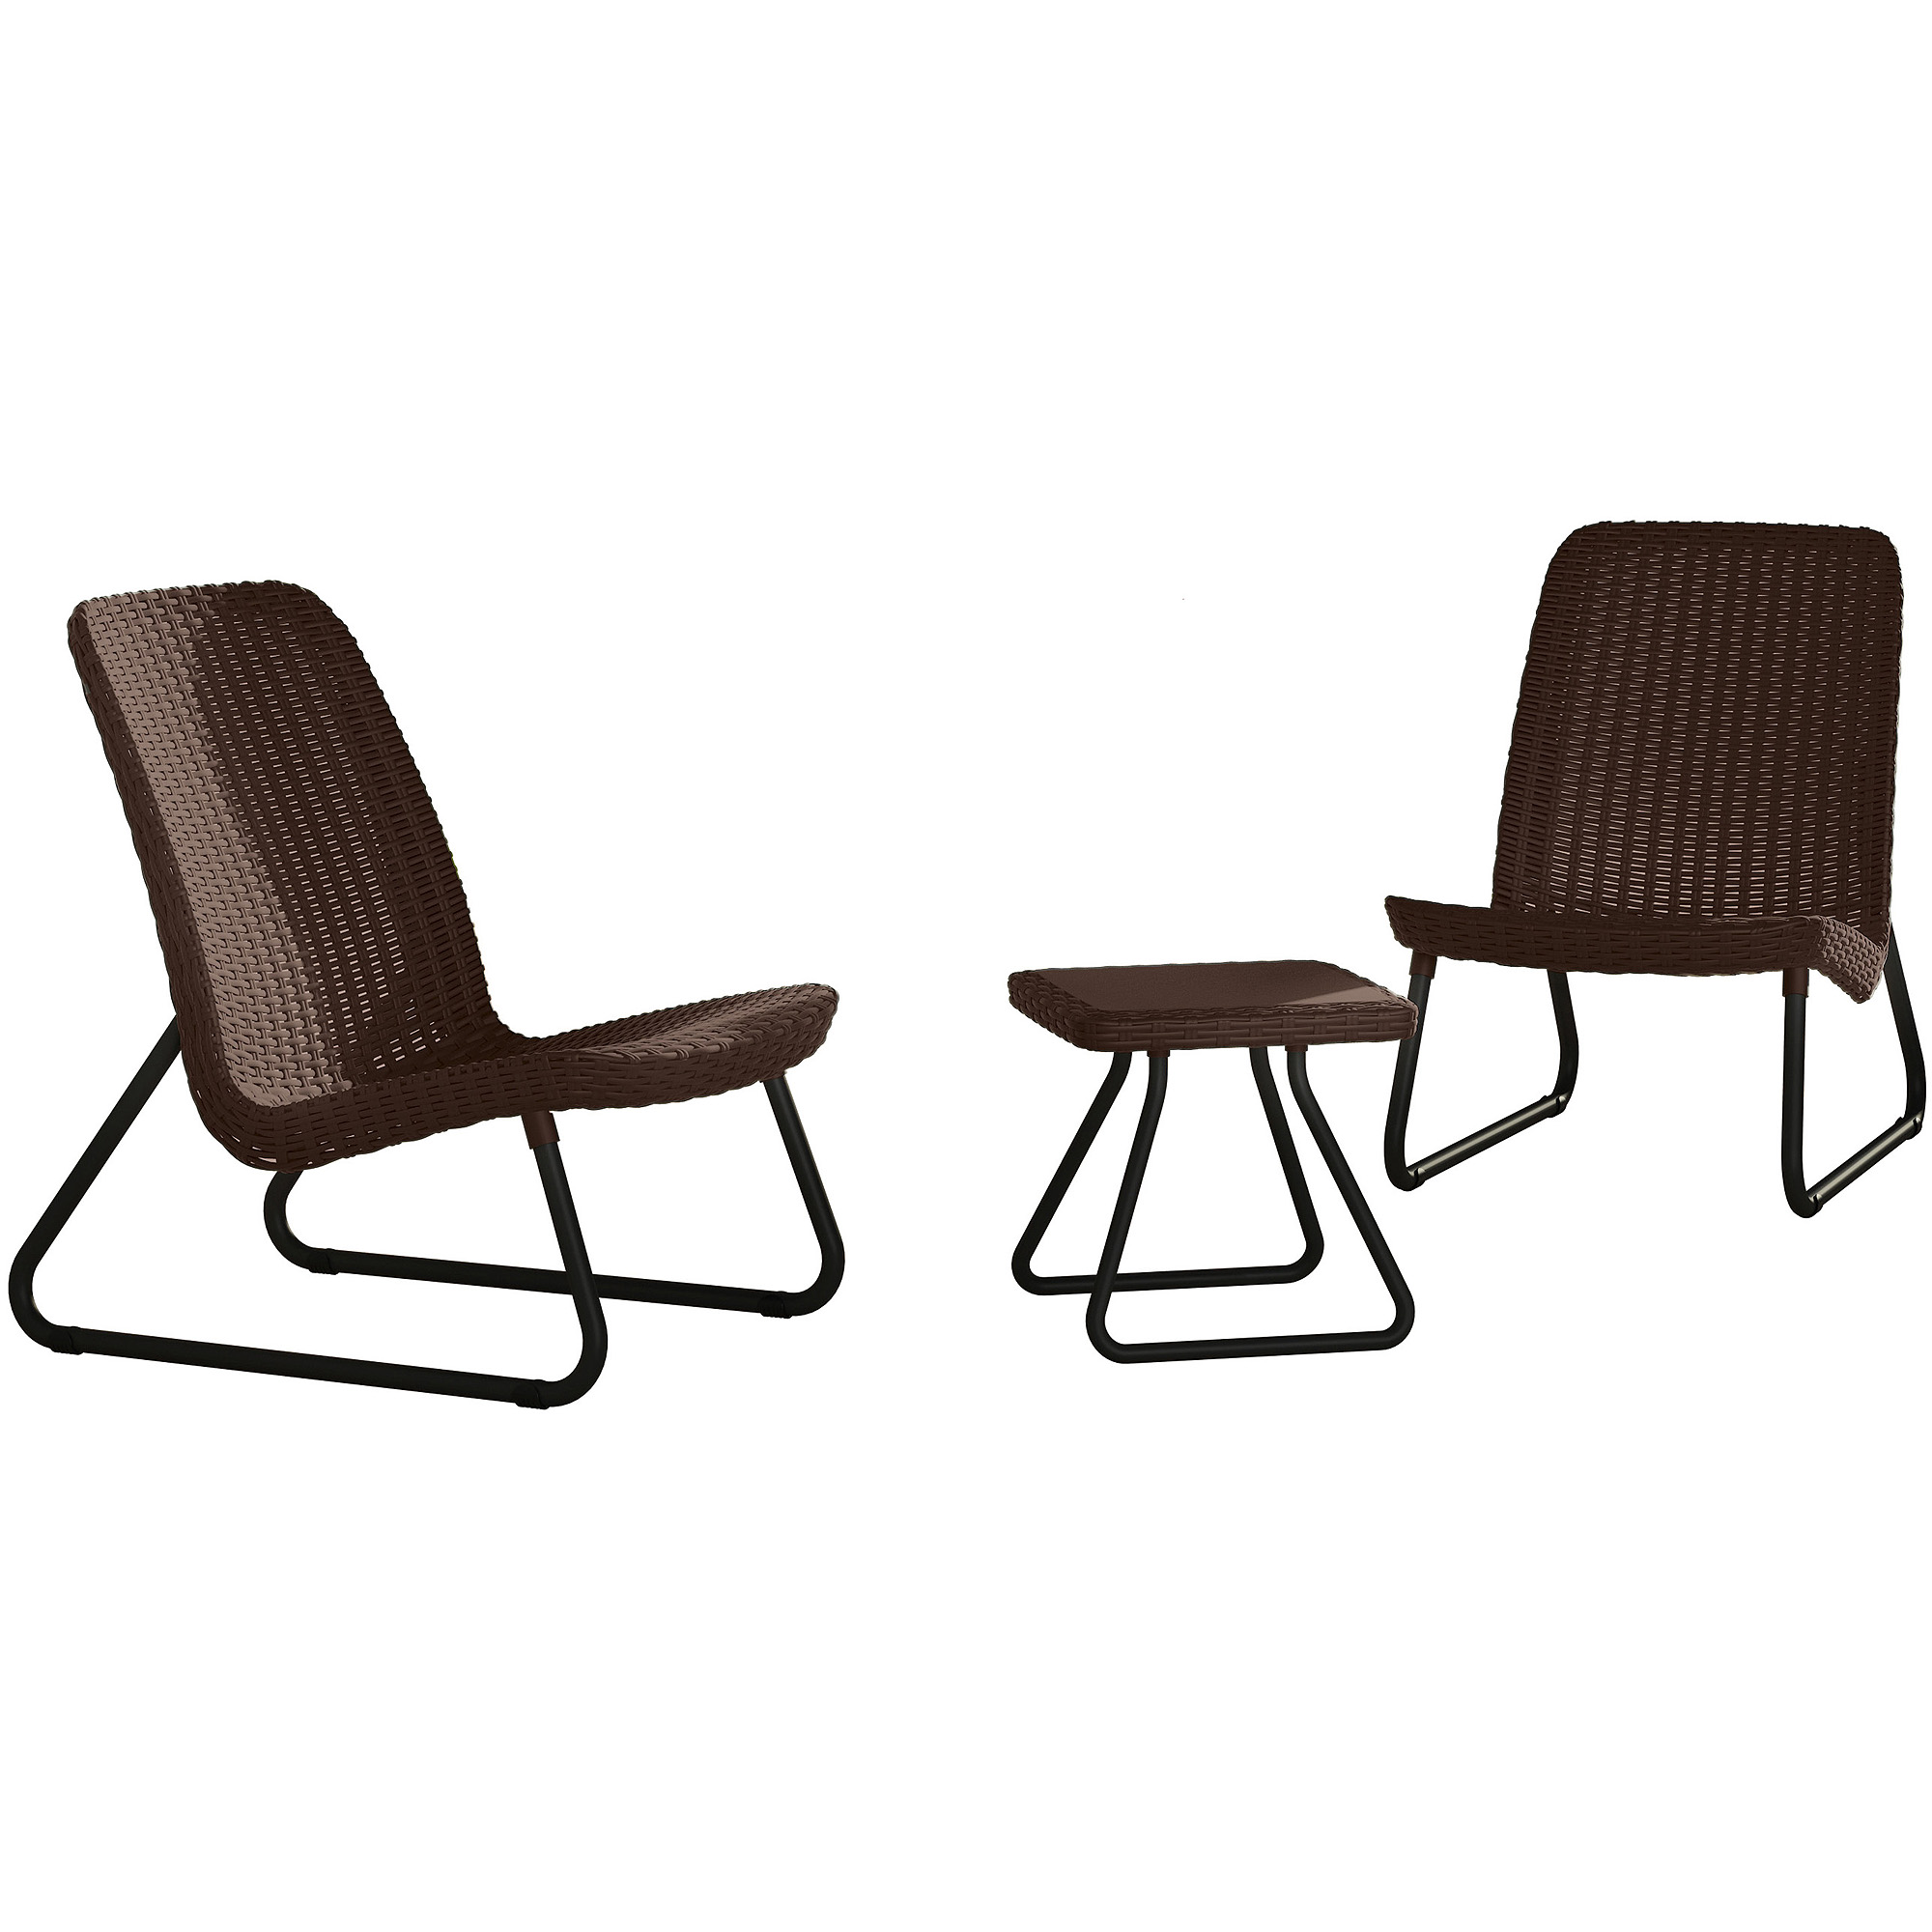 Keter Rio Resin 3-Piece Conversation Set, All-Weather Plastic Patio Lounge Furniture, Brown Rattan